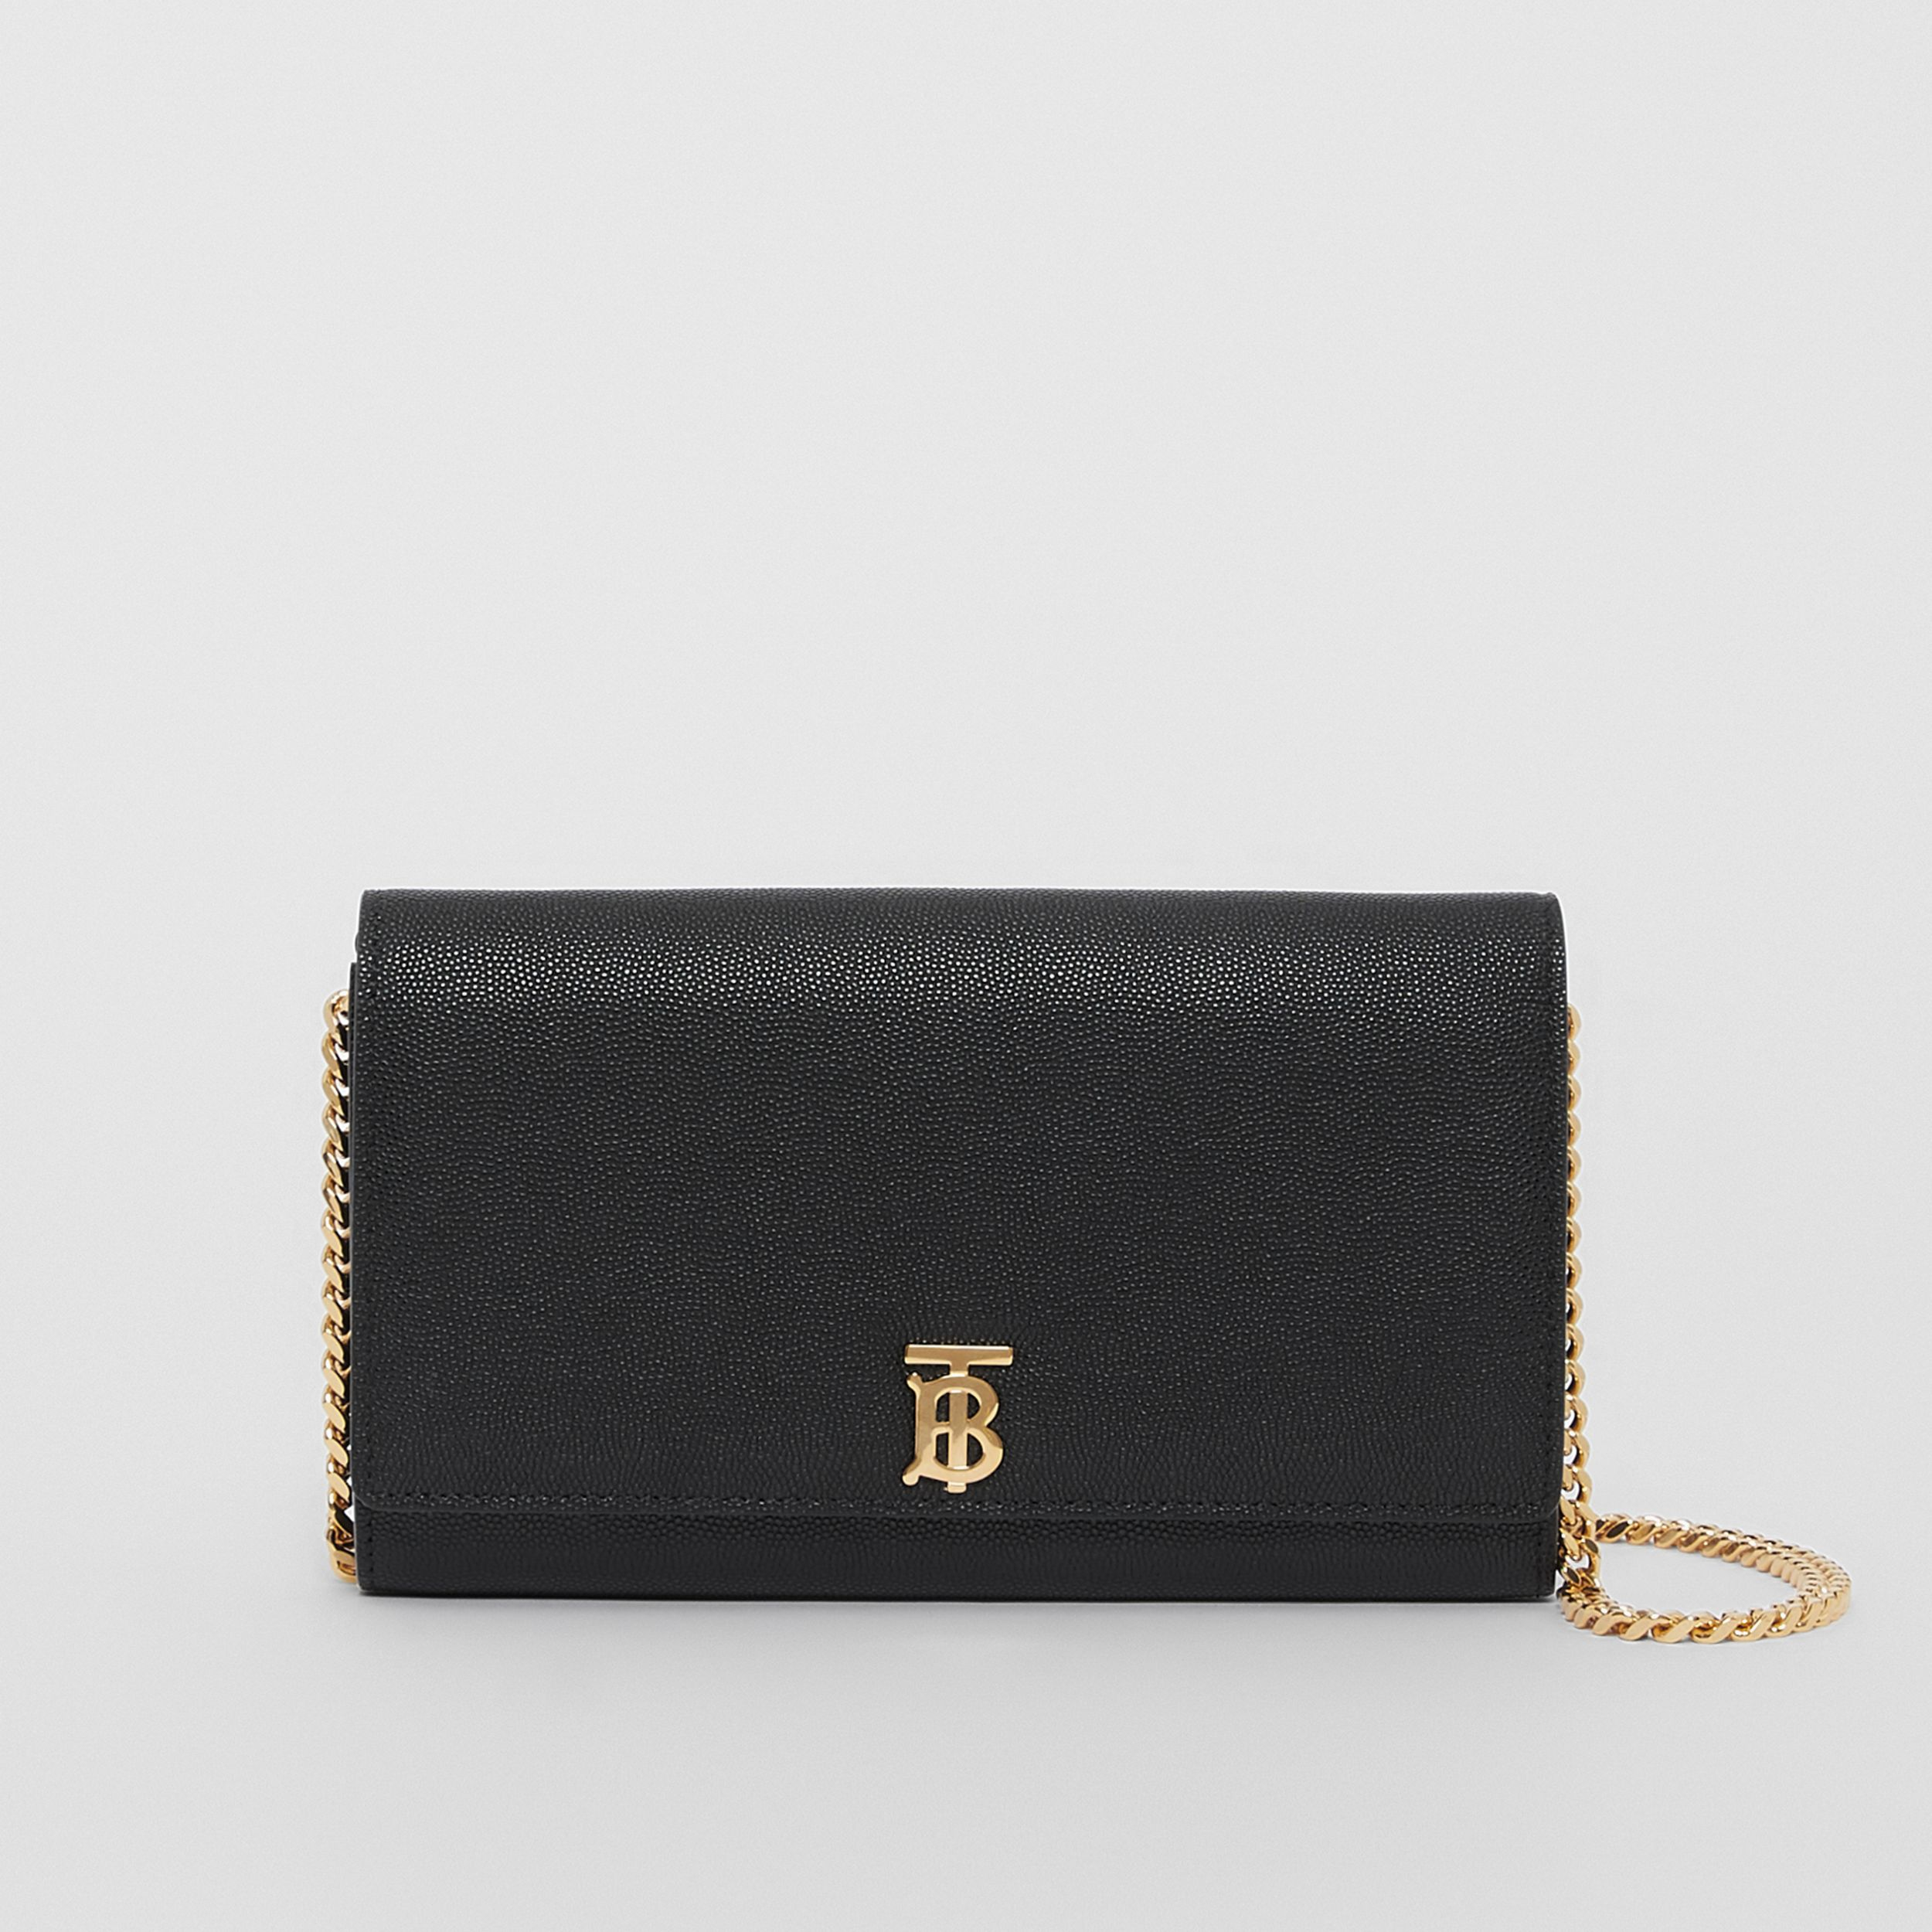 Monogram Motif Leather Wallet with Detachable Strap in Black - Women | Burberry - 1